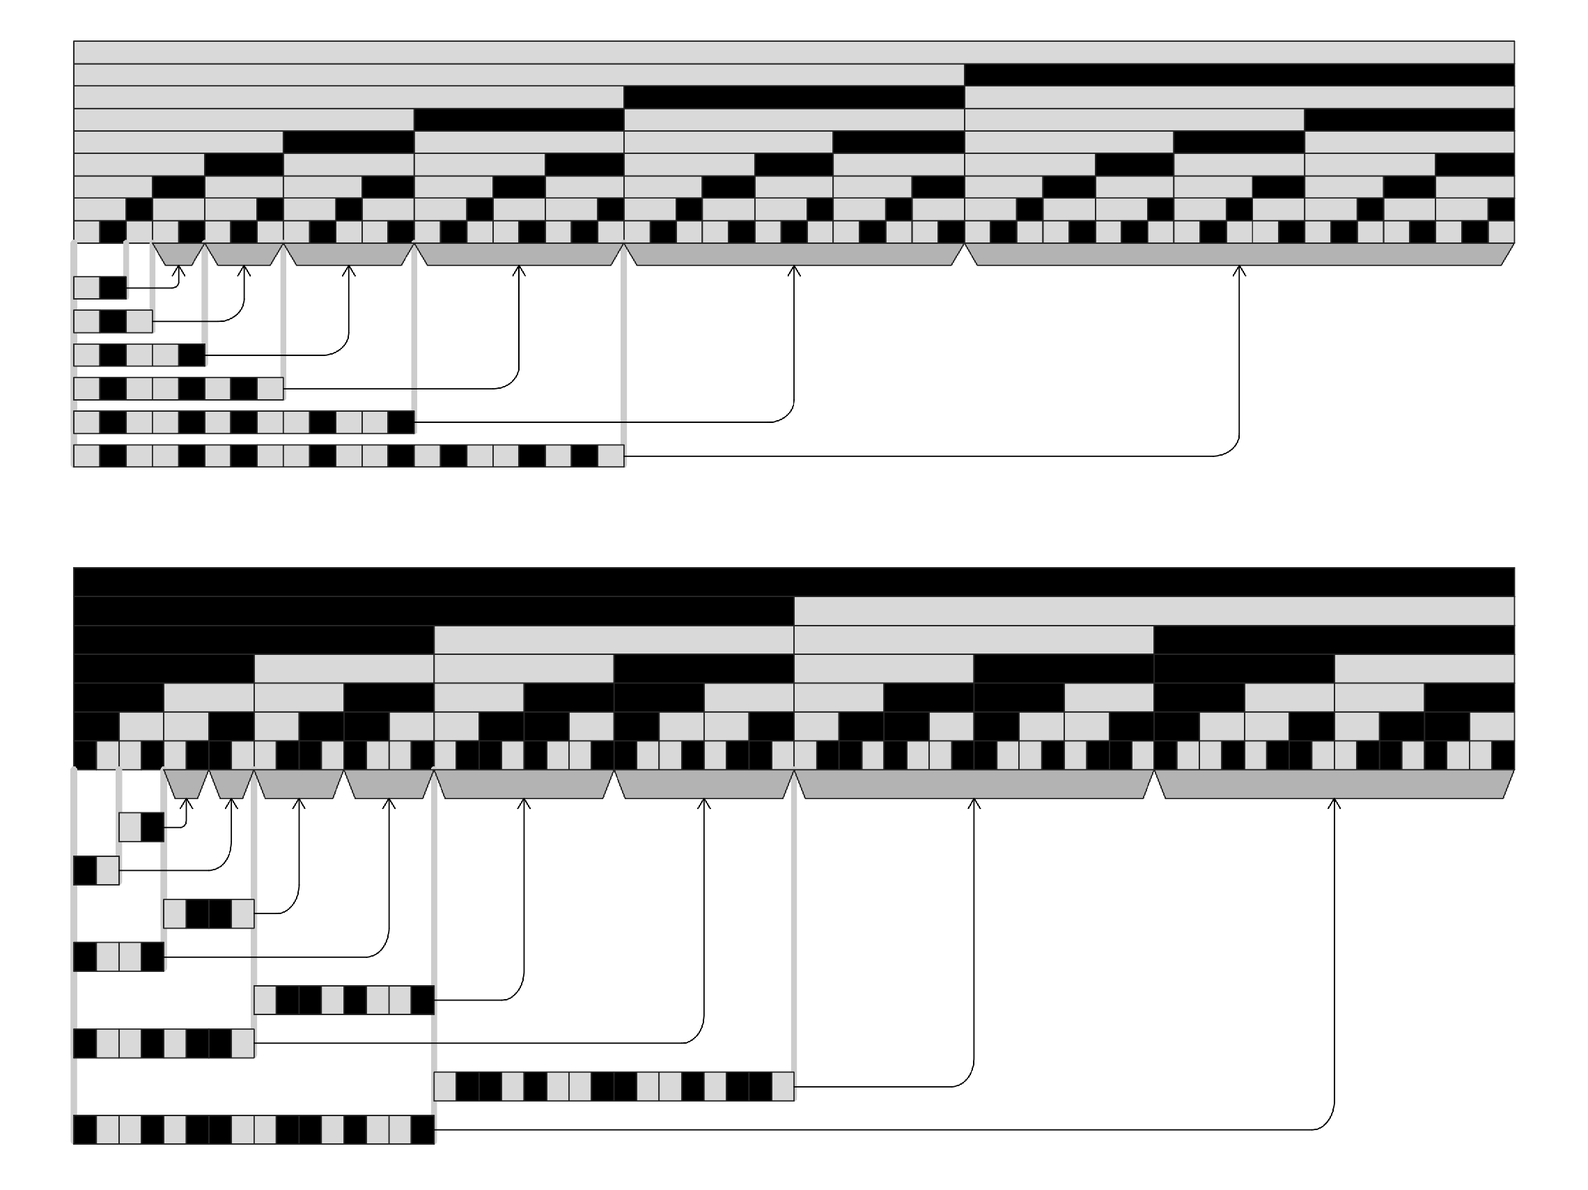 Examples of the pattern of repeats found in purely nested data